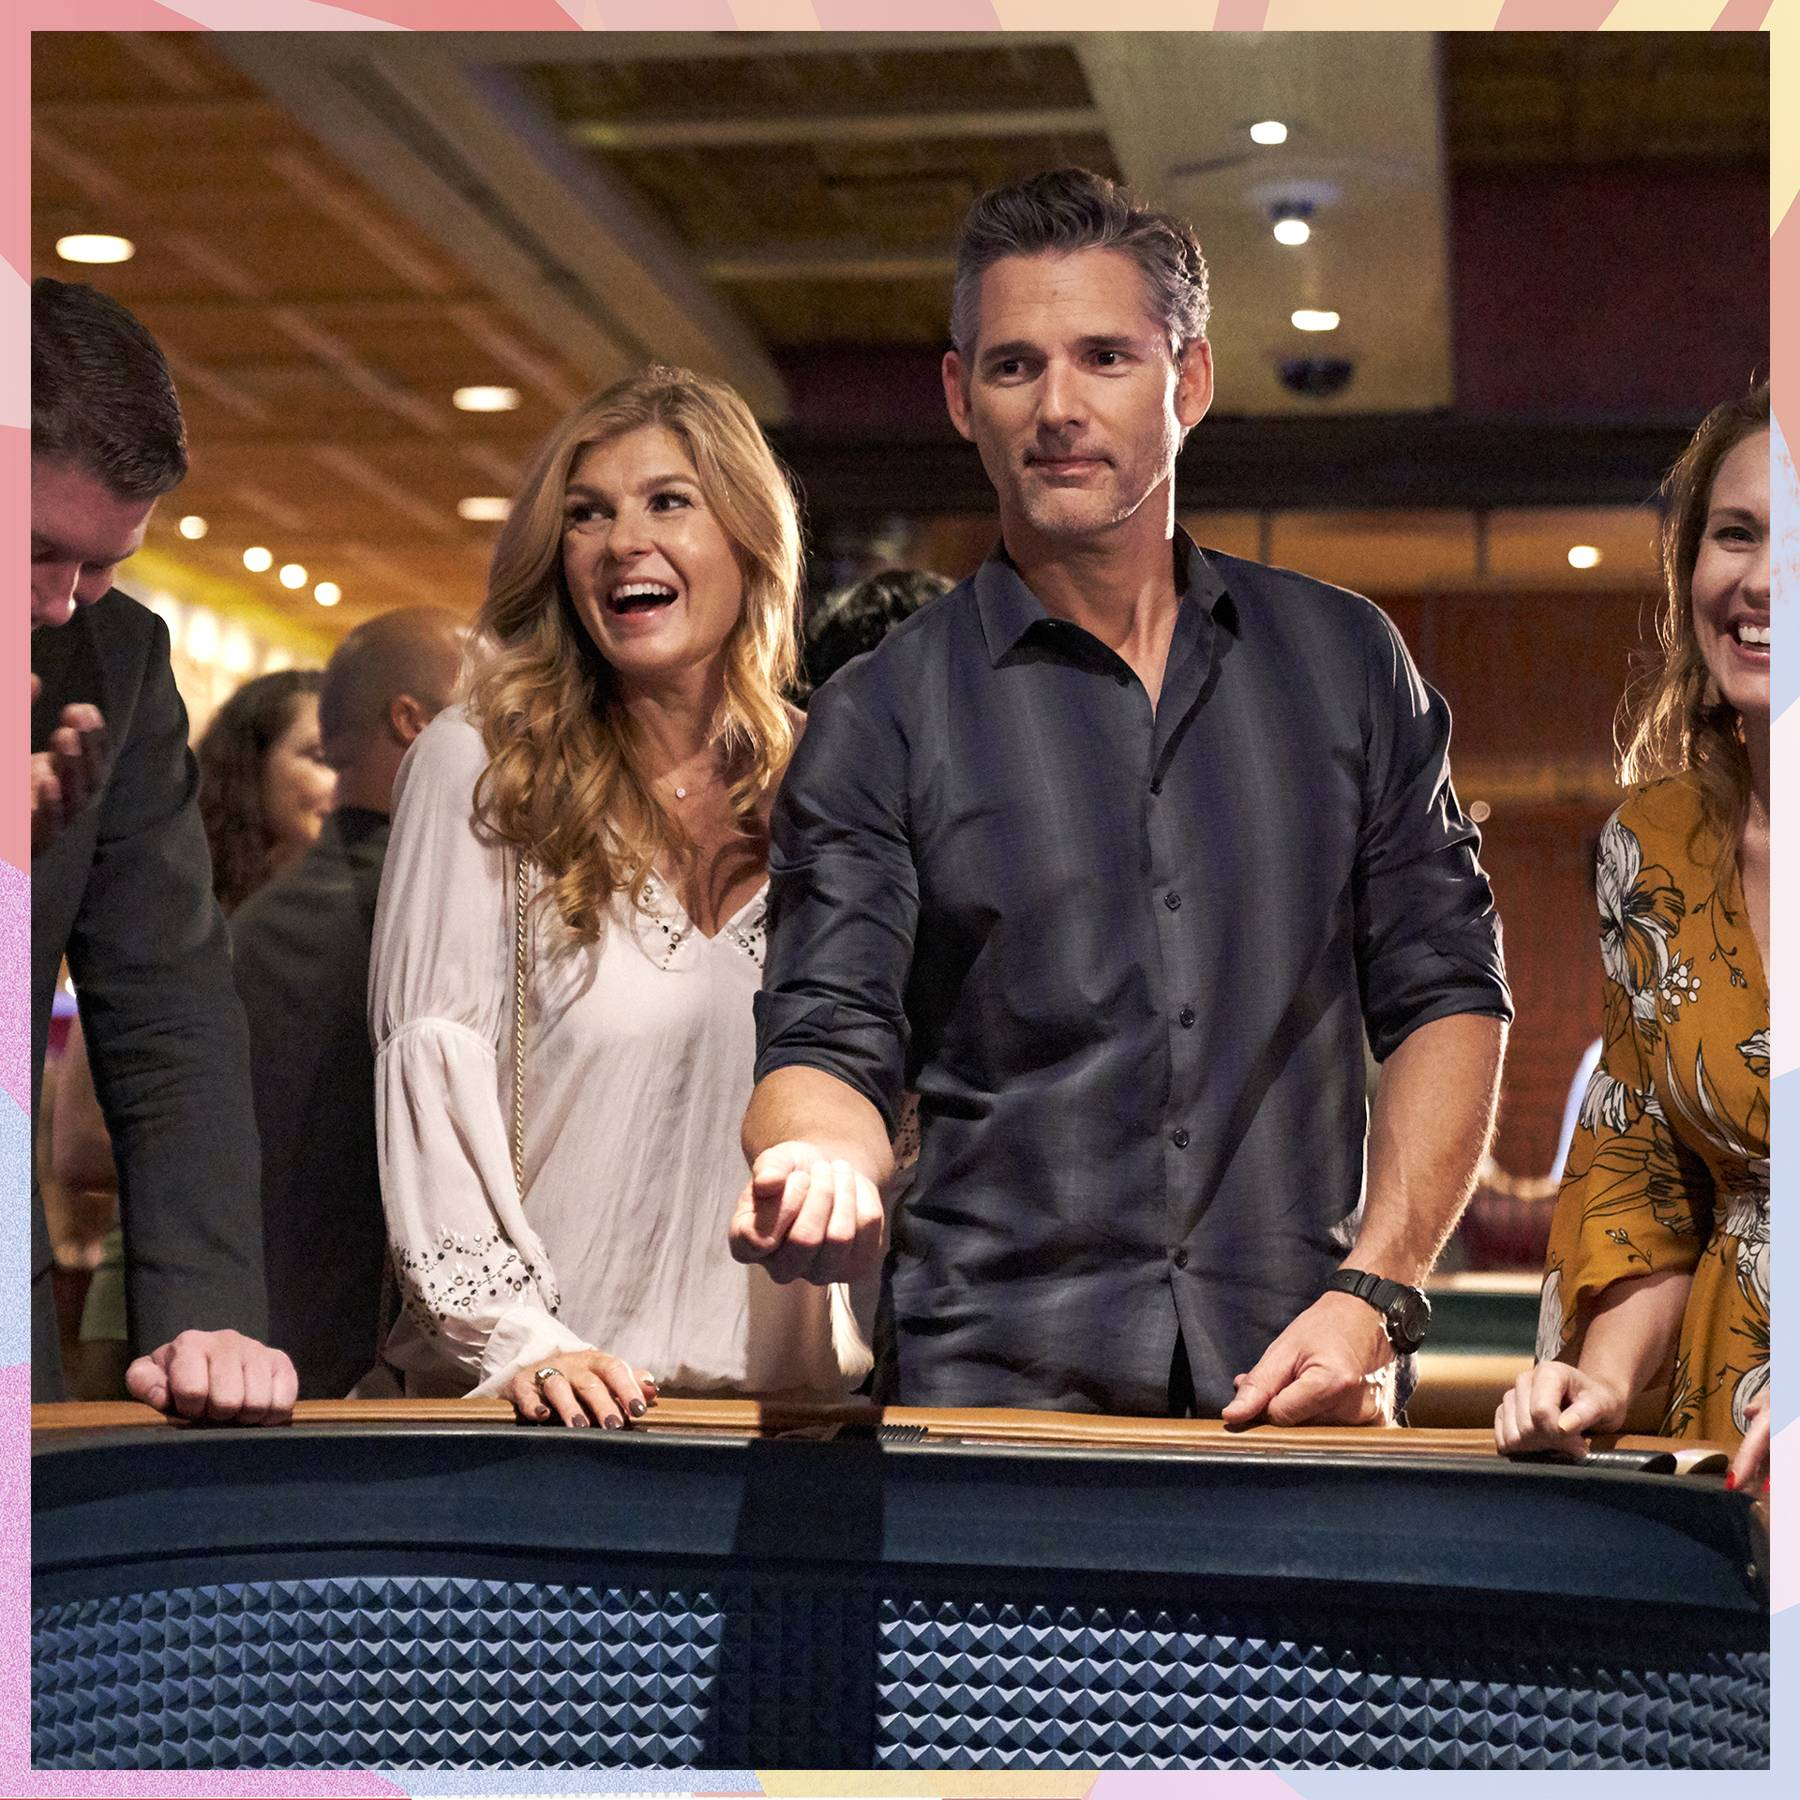 Dirty John Season 2 Is Coming To Netflix: Here's What You Need To